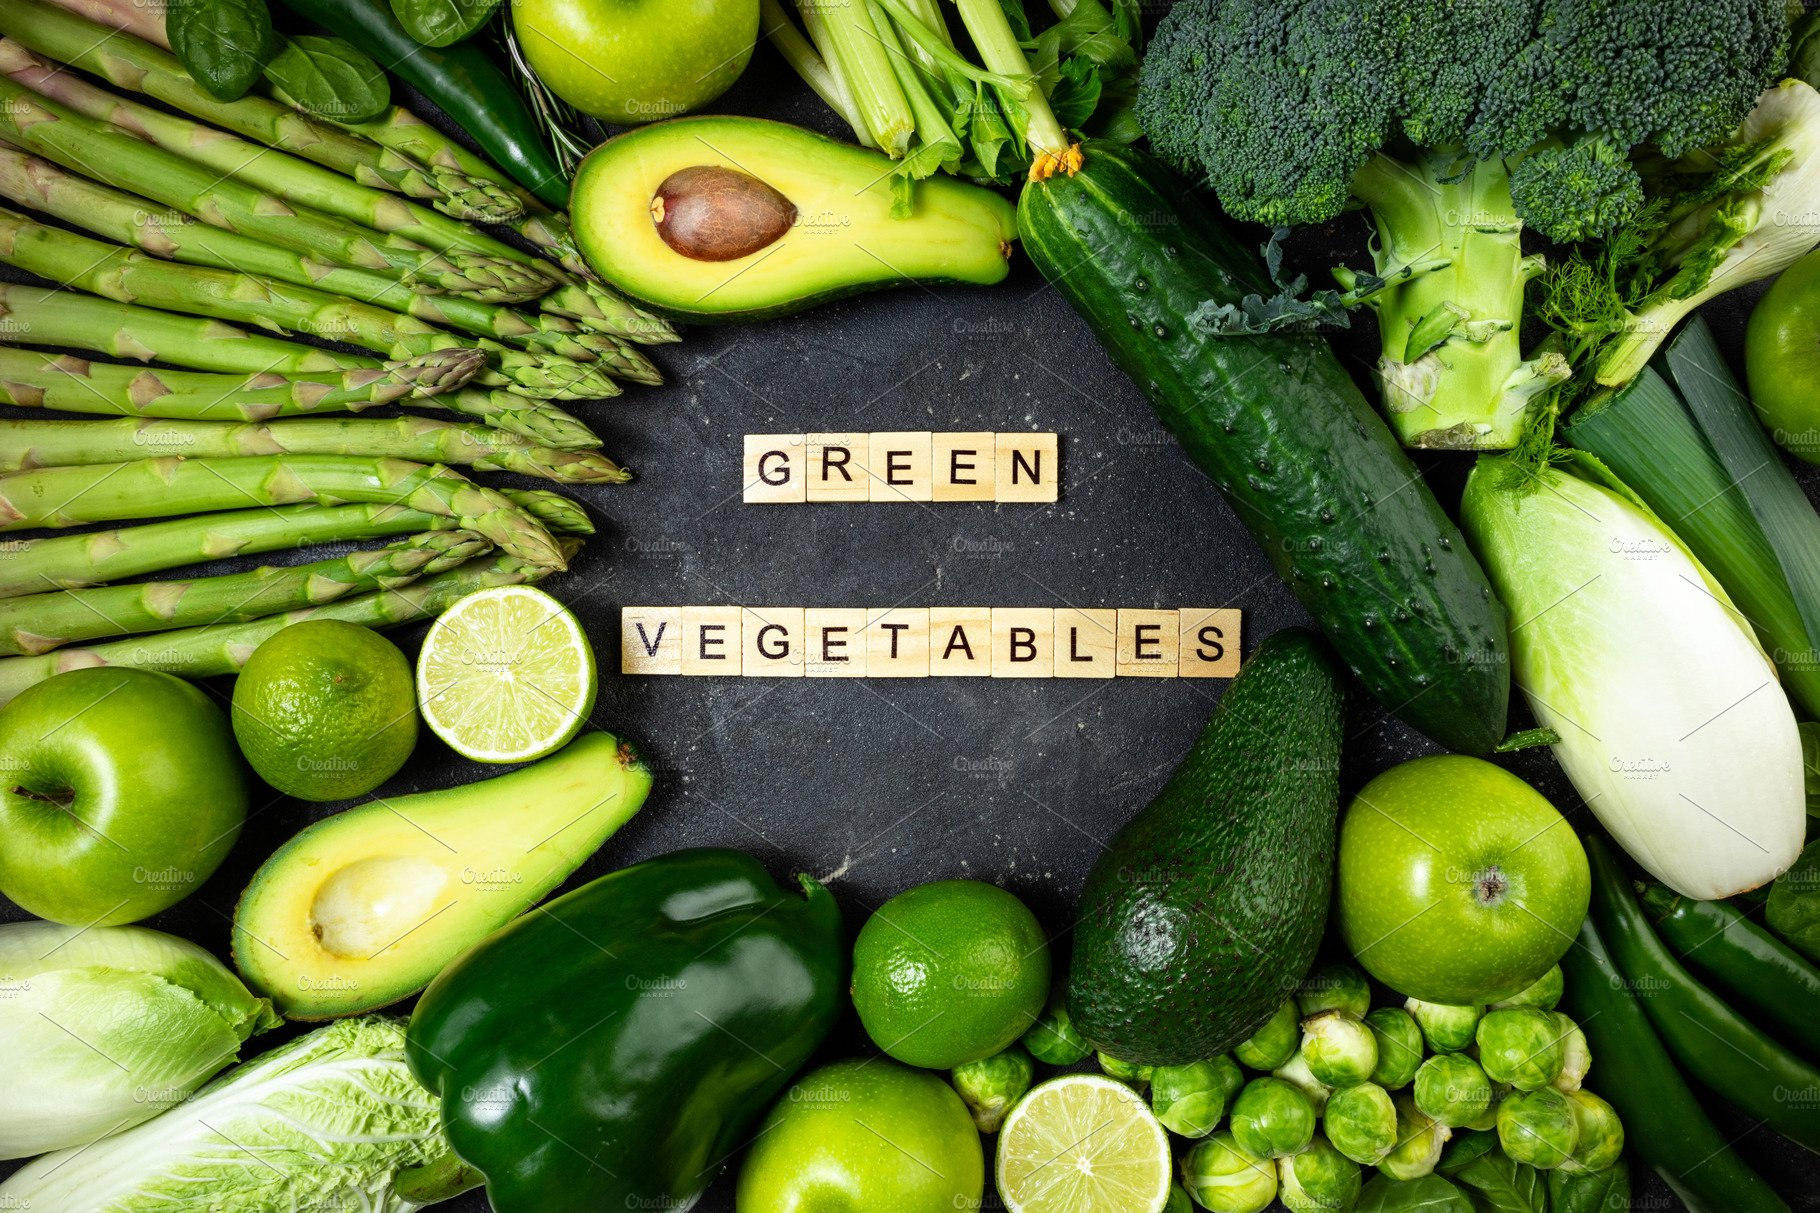 Healthy Food Green Vegetables and fruits, High-Quality Food